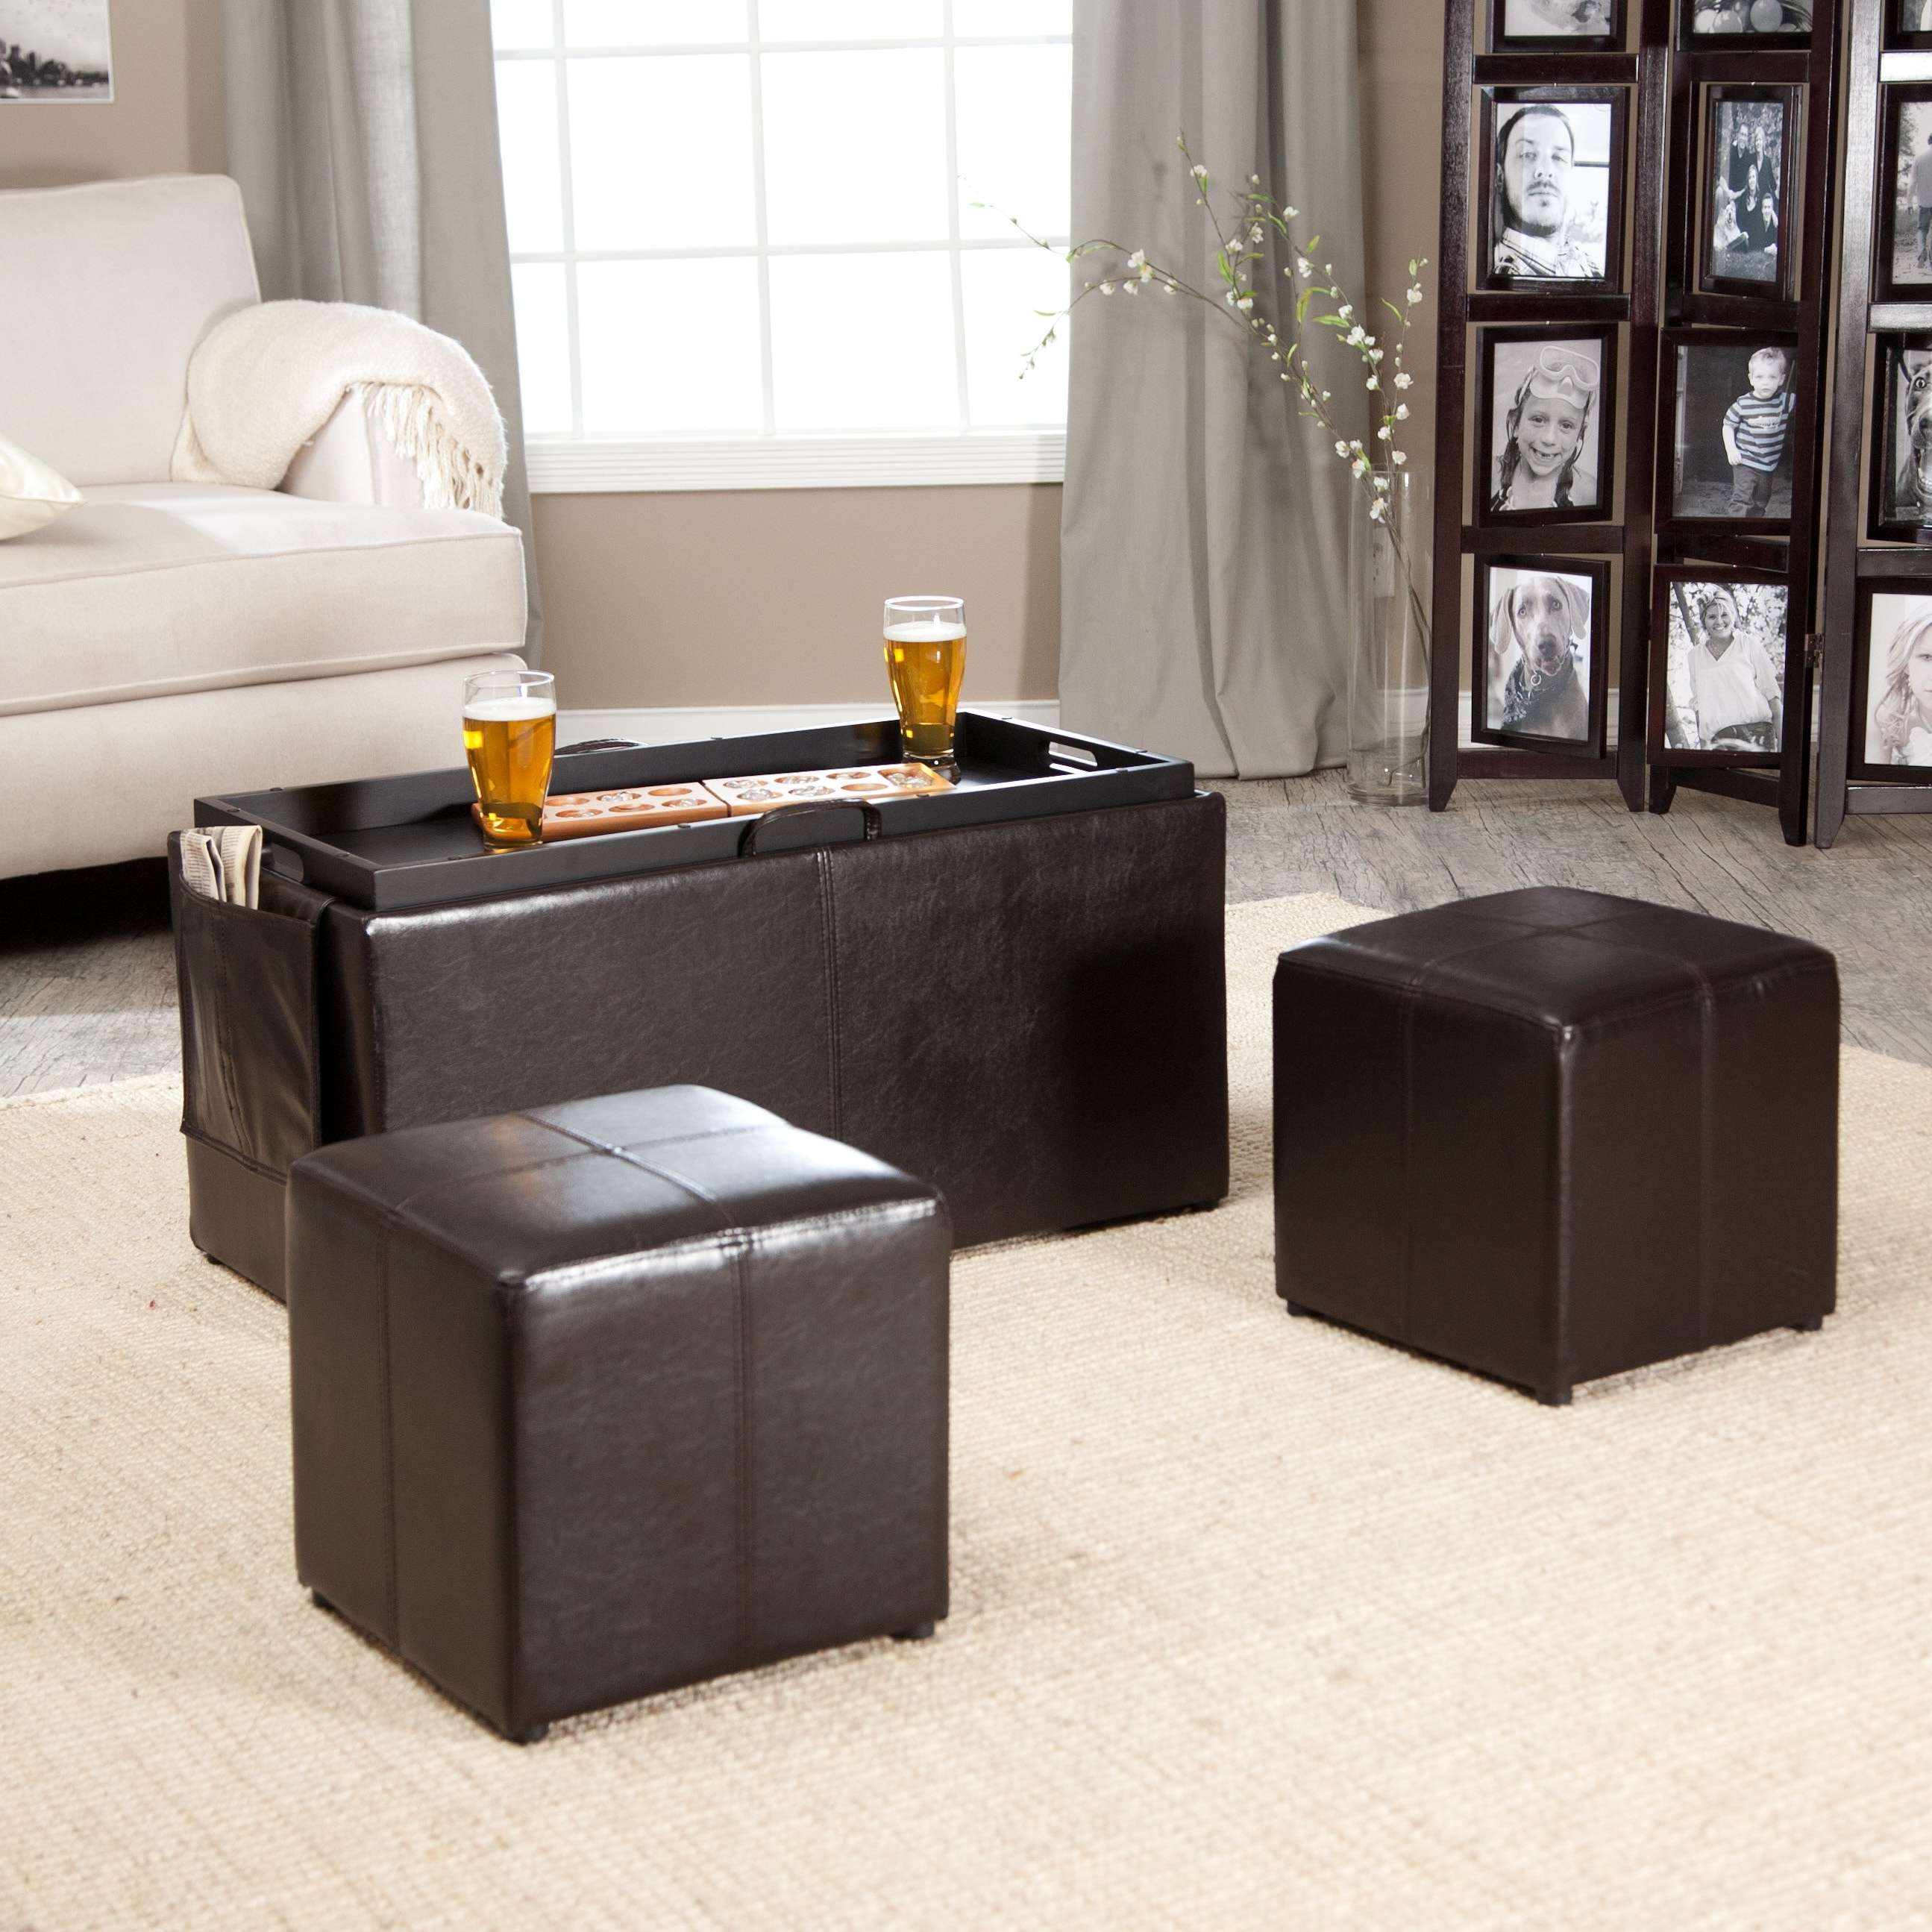 Coffee Table : Magnificent Brown Leather Ottoman Coffee Table Regarding Newest Brown Leather Ottoman Coffee Tables (View 4 of 20)